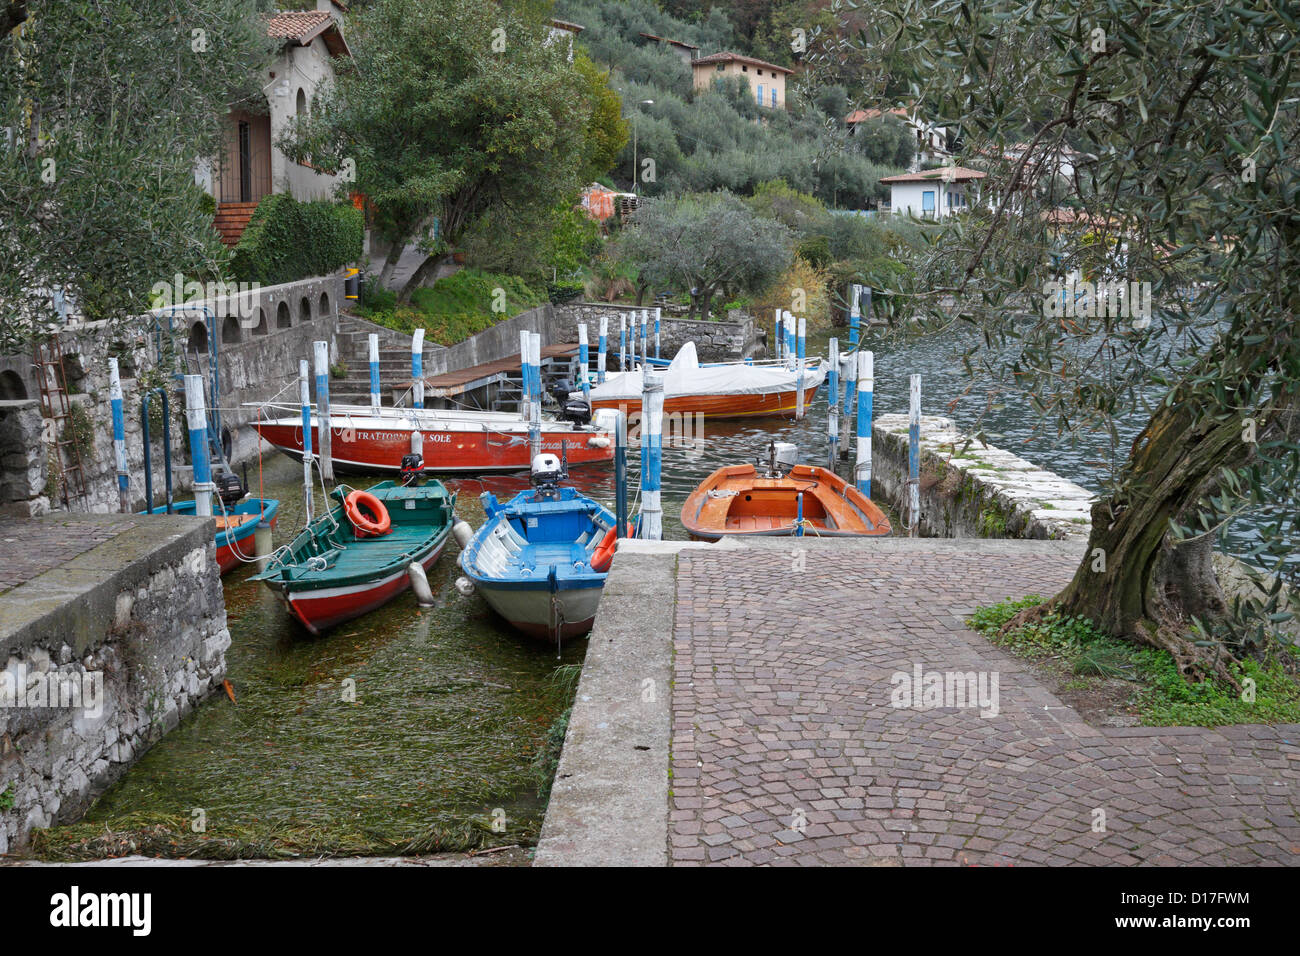 Boats in a small harbour in Monte Isola on Lake Iseo near Bergamo, Lombardy, Italy, Europe. - Stock Image